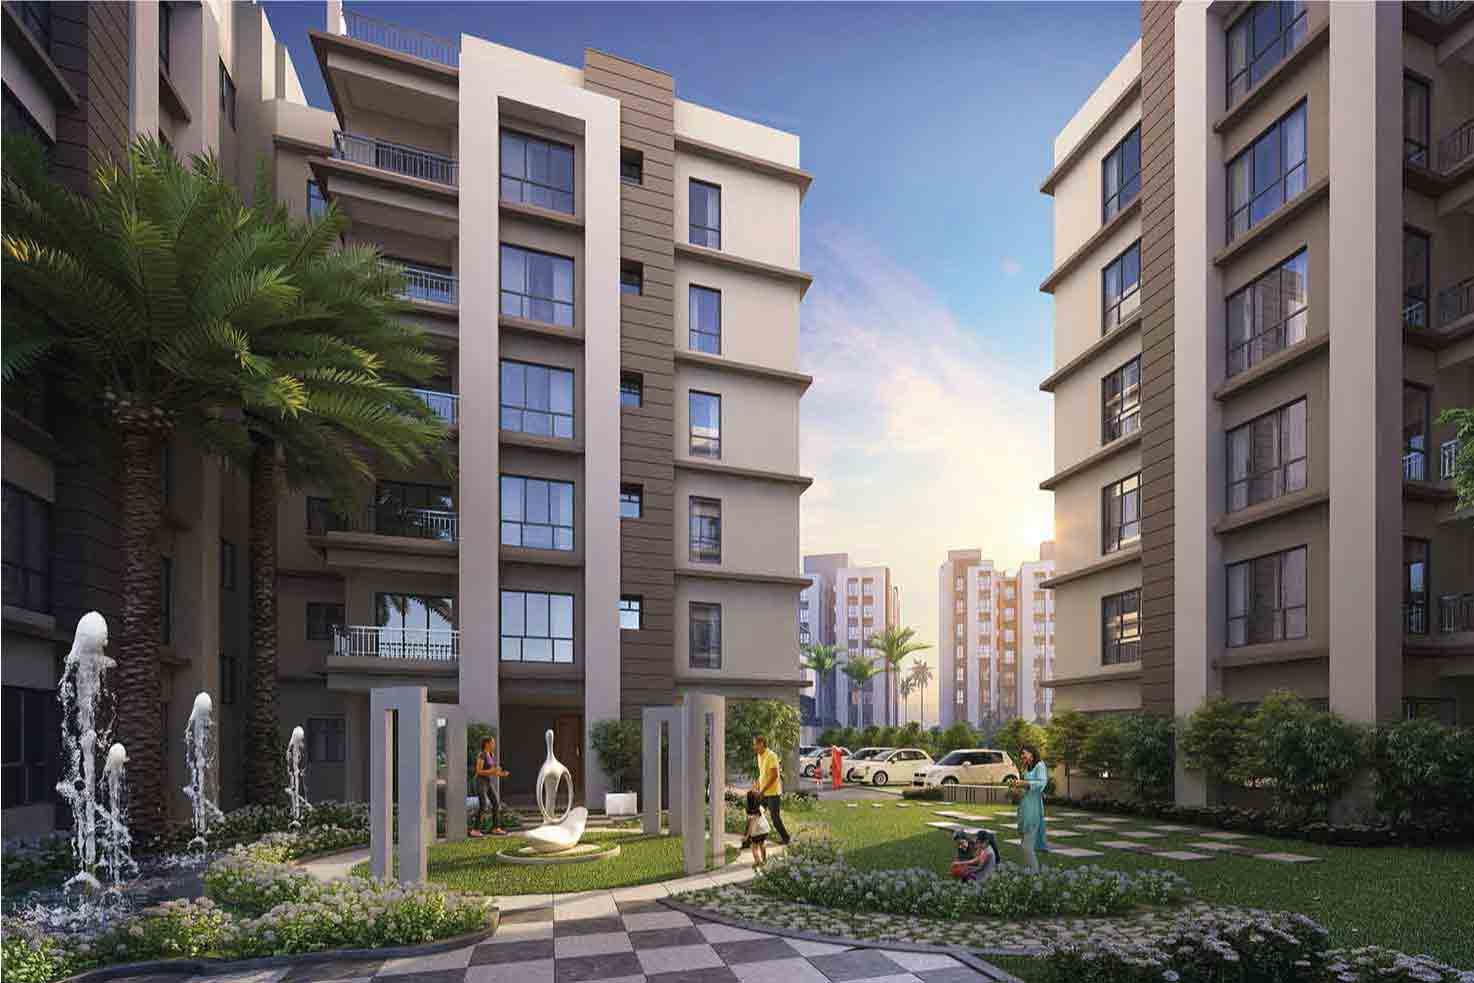 Flats in Madhyamgram